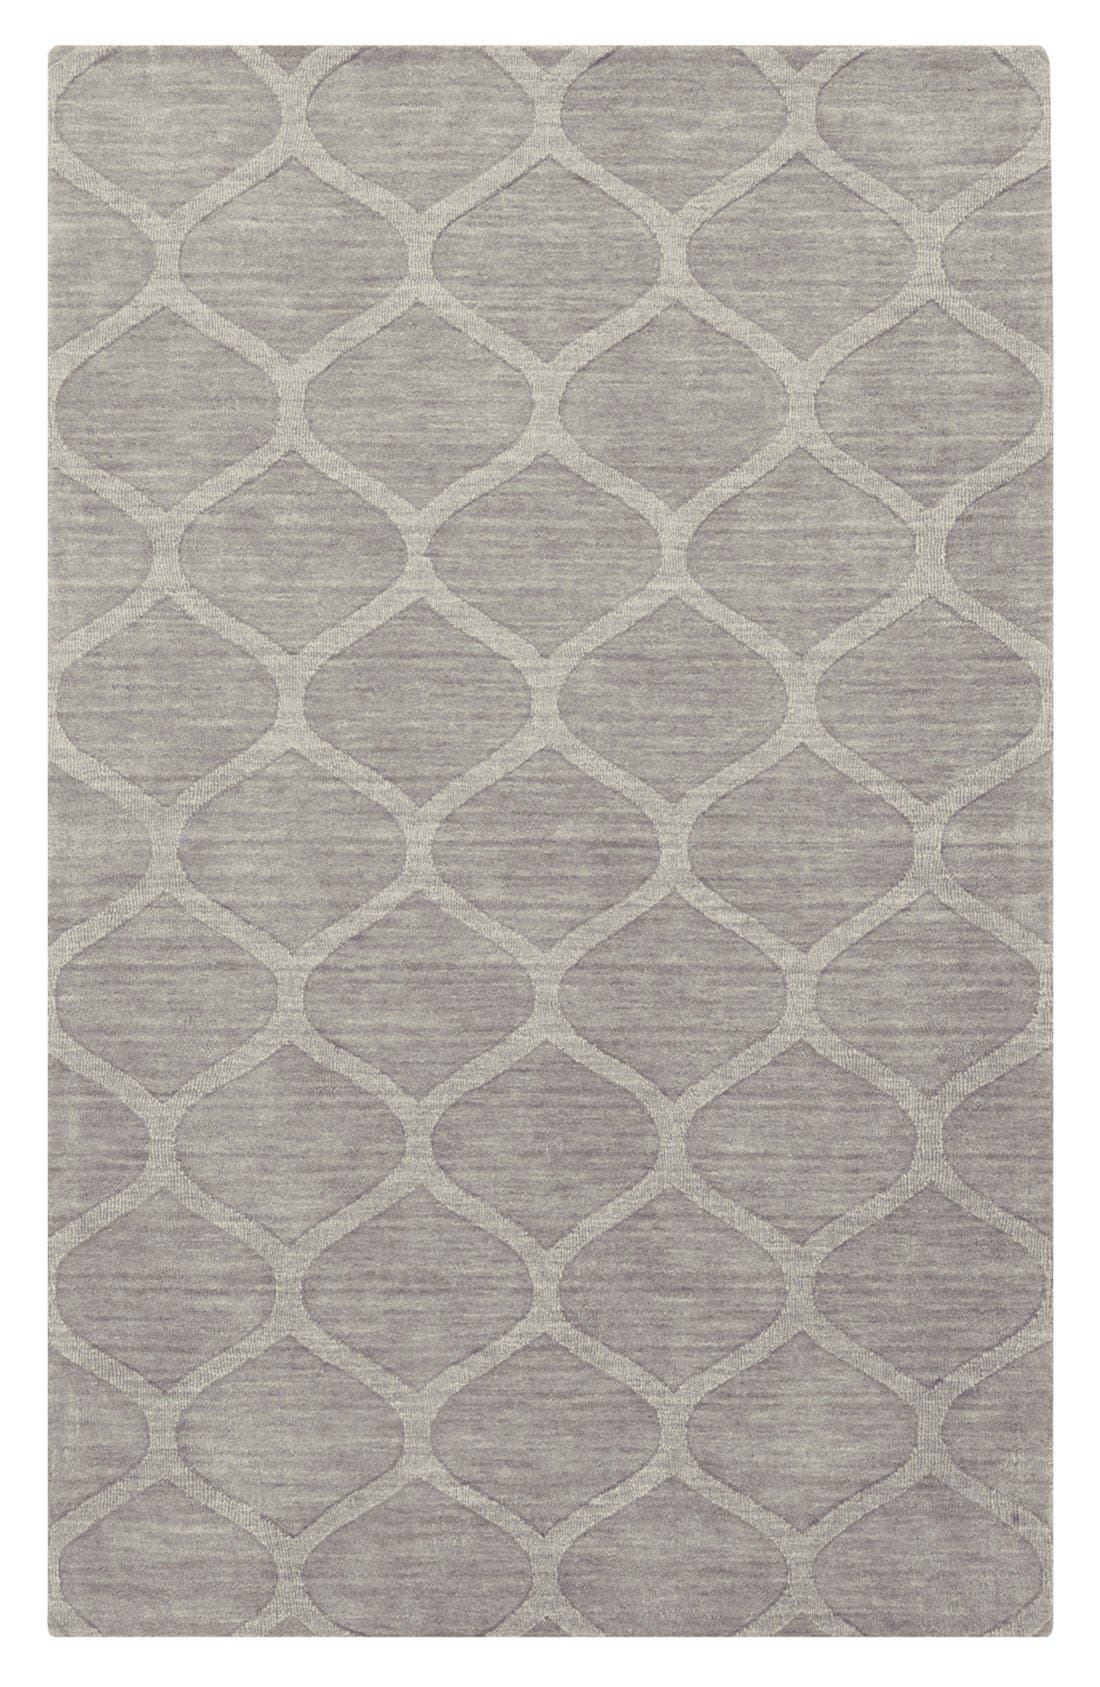 SURYA HOME,                             'Mystique' Hand Loomed Wool Rug,                             Main thumbnail 1, color,                             020